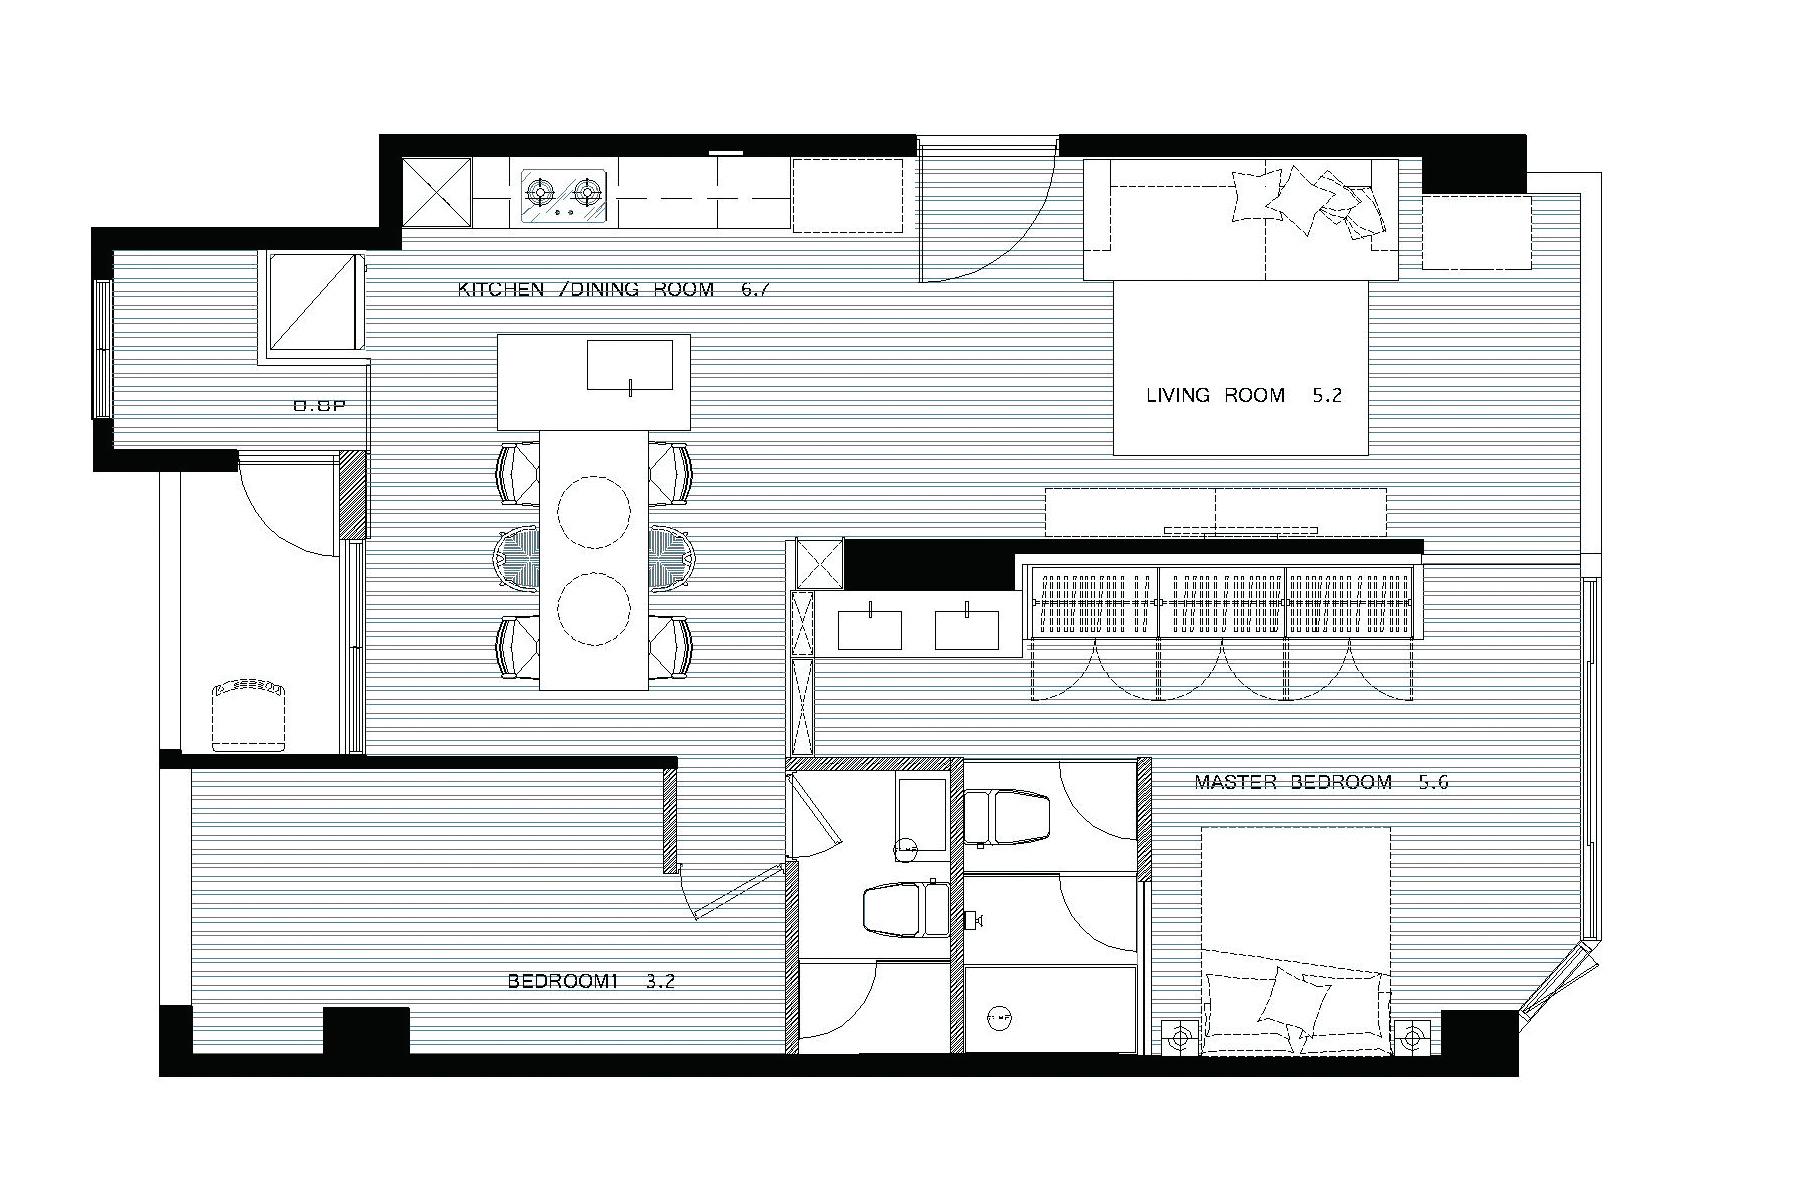 Bungalow 2 bedroom plan in philippines joy studio design Apartment floor plan philippines